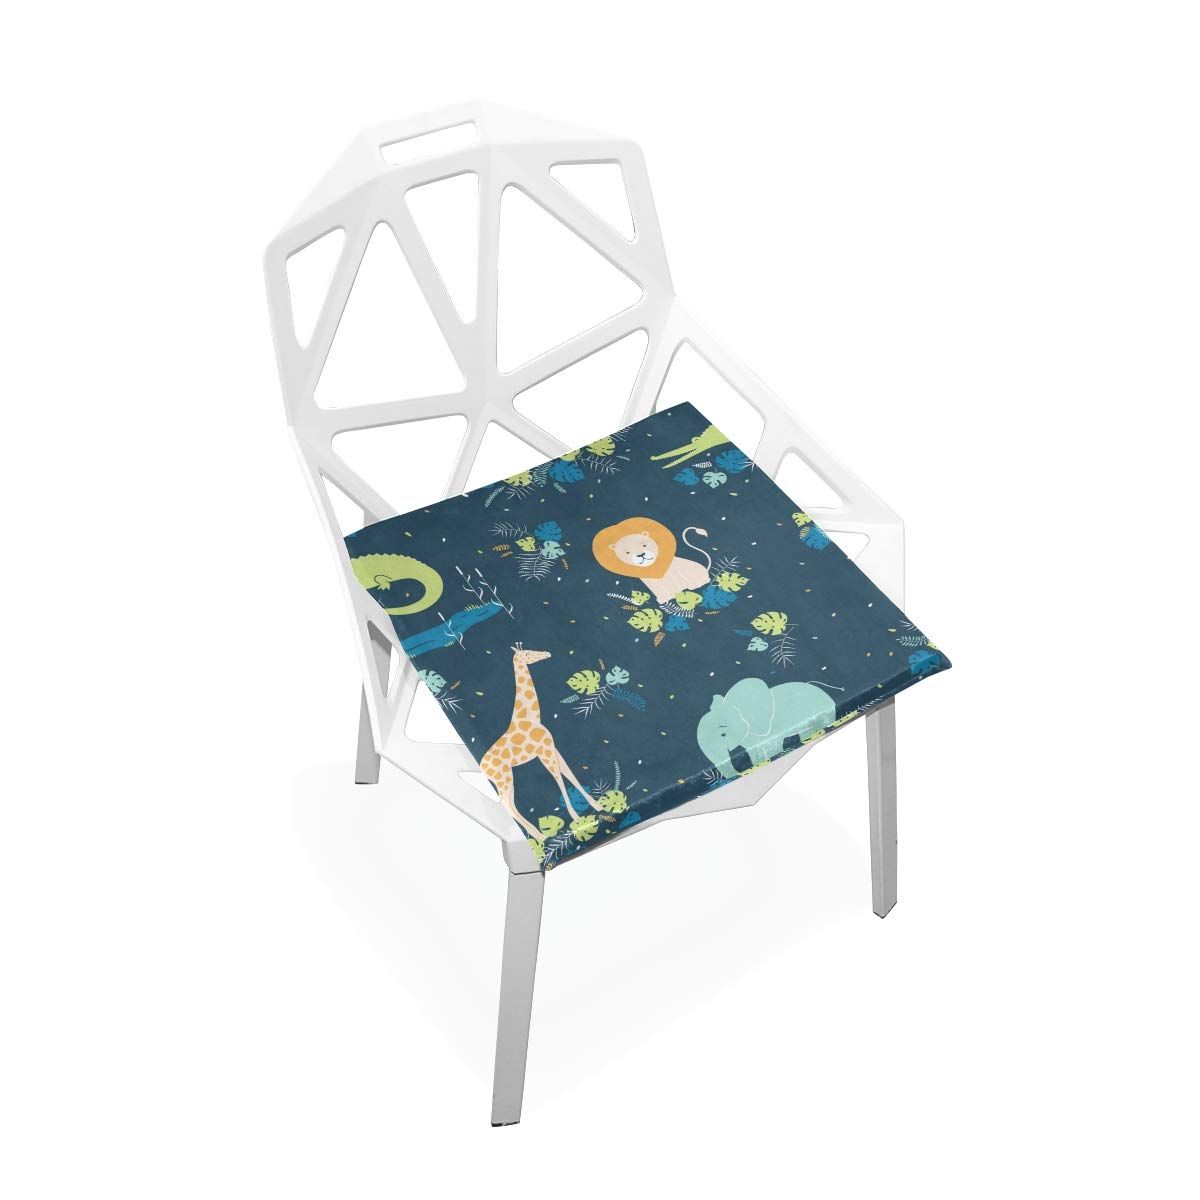 SUABO PLAO Chair Pads Tropical Animals Soft Seat Cushions Nonslip Chair Mats for Dining, Patio, Camping, Kitchen Chairs, Home Decor